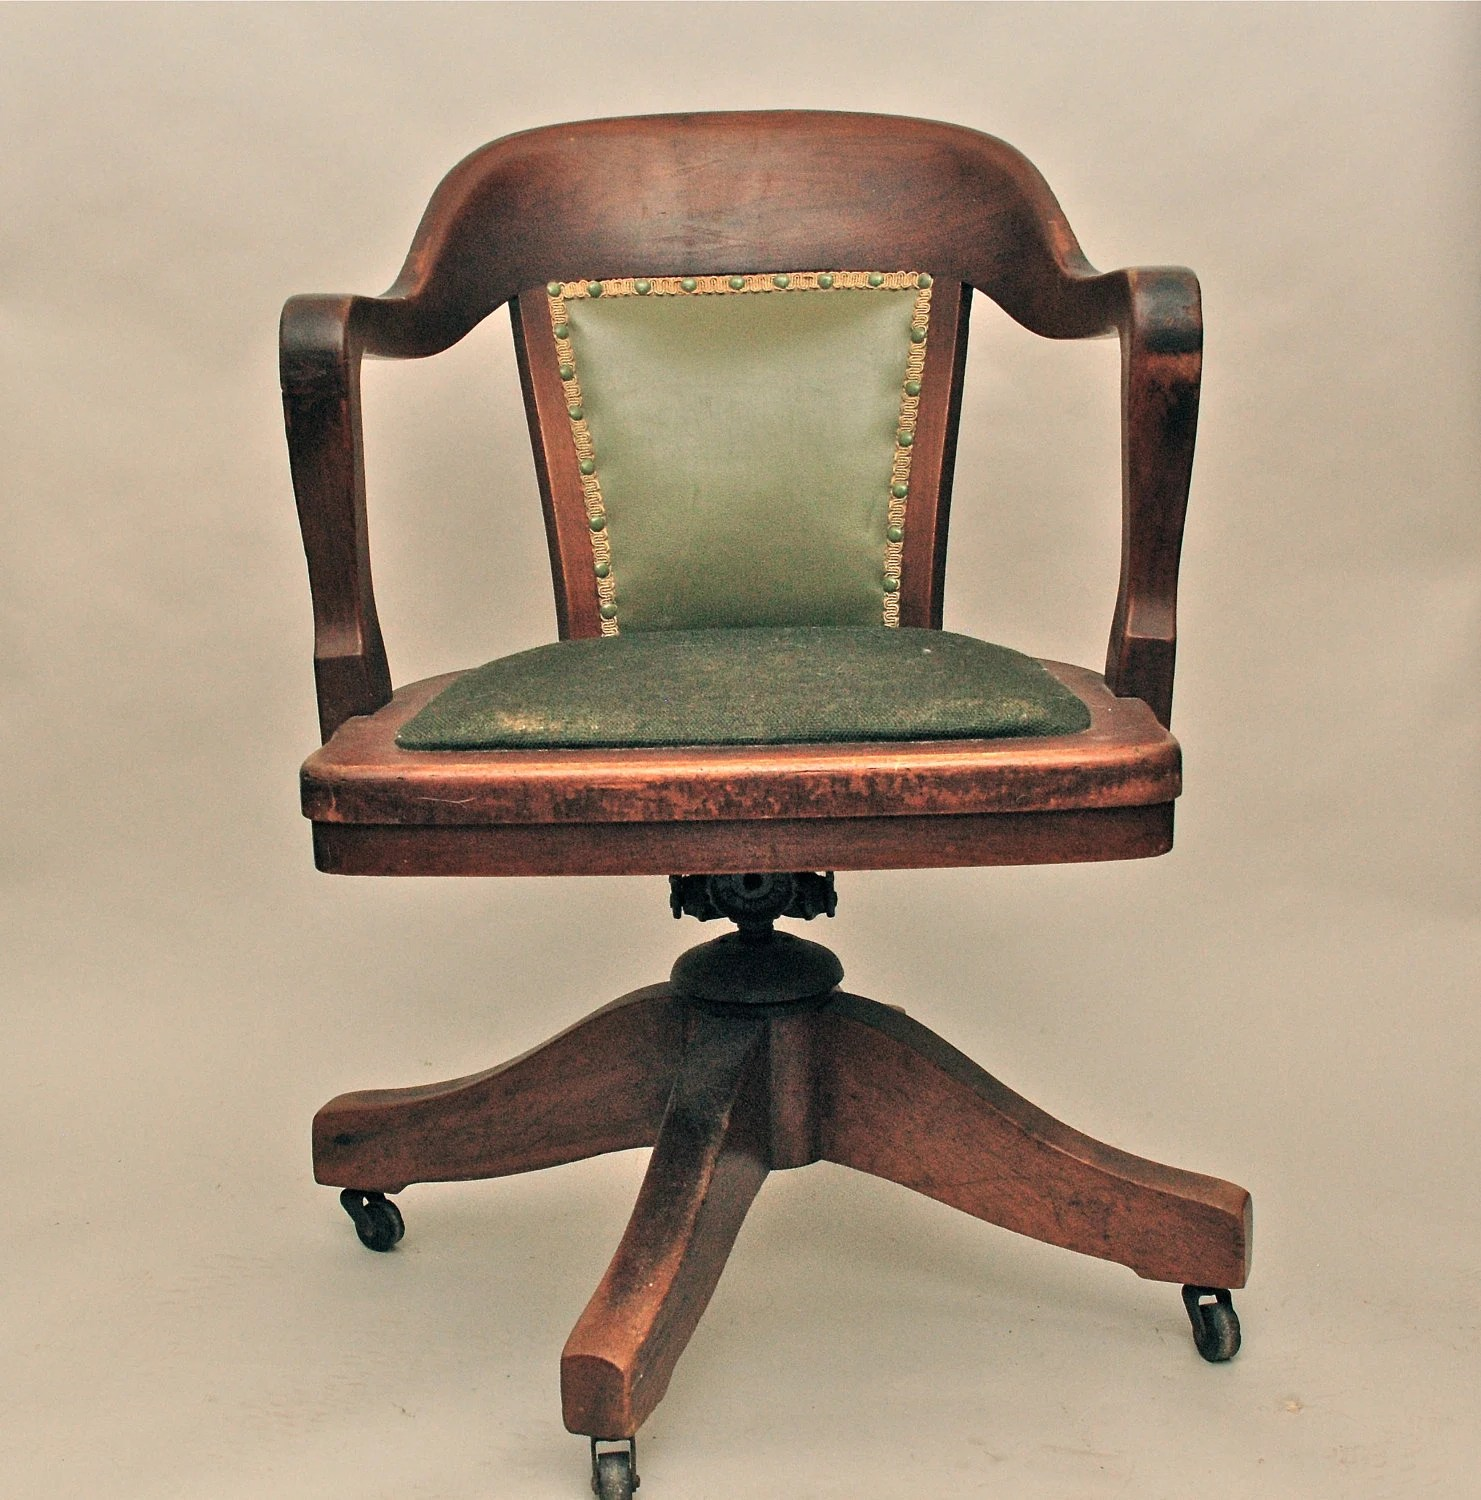 Wood Bankers Chair Vintage Antique Wooden Swivel Bankers Or Library Chair